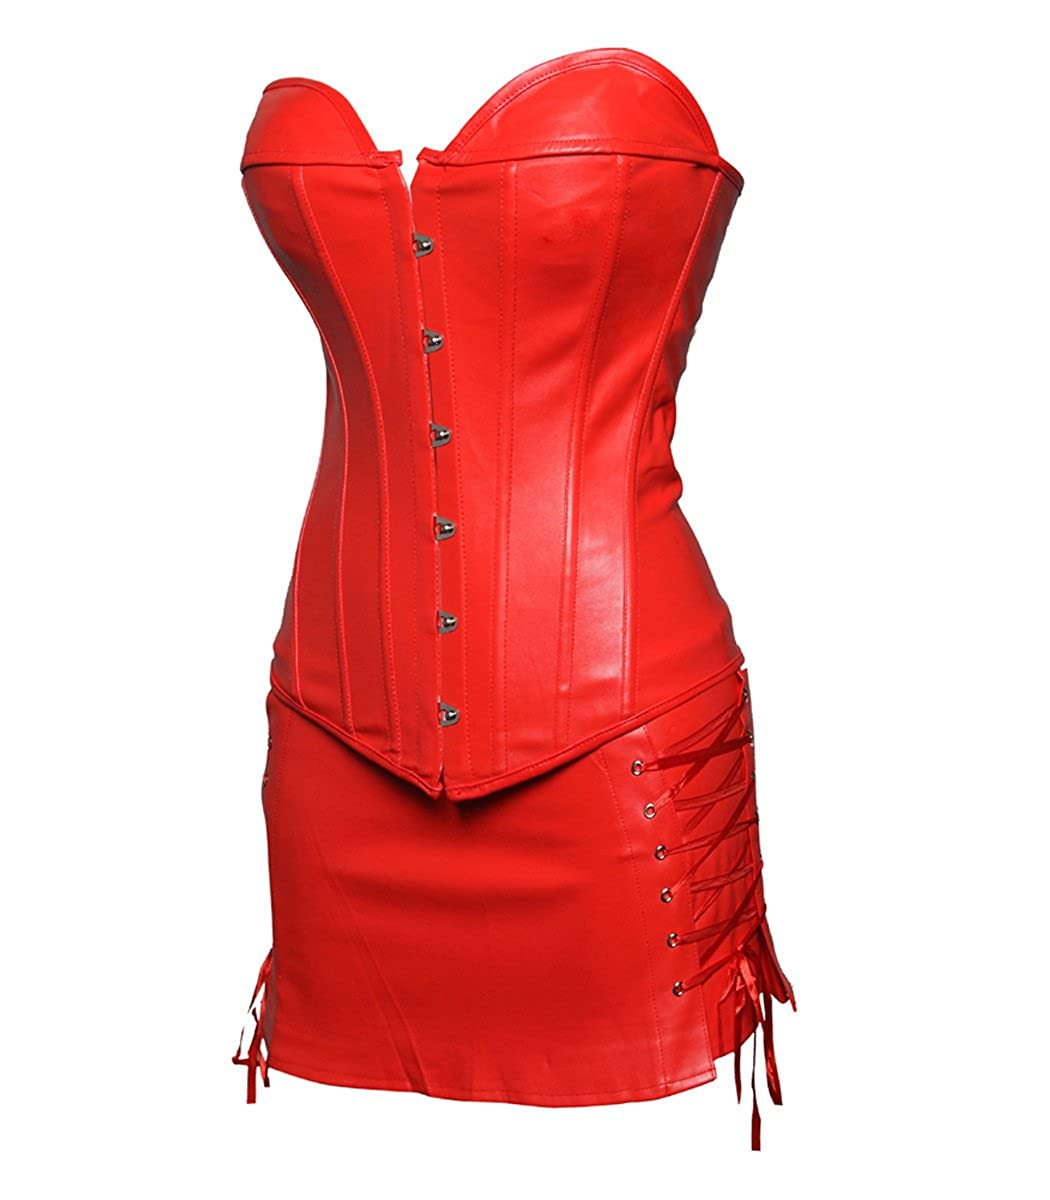 1b245dde79 JL Corset Plus Size GOTH PUNK Faux Leather Corsets with Skirt Mini Dress   Amazon.co.uk  Clothing